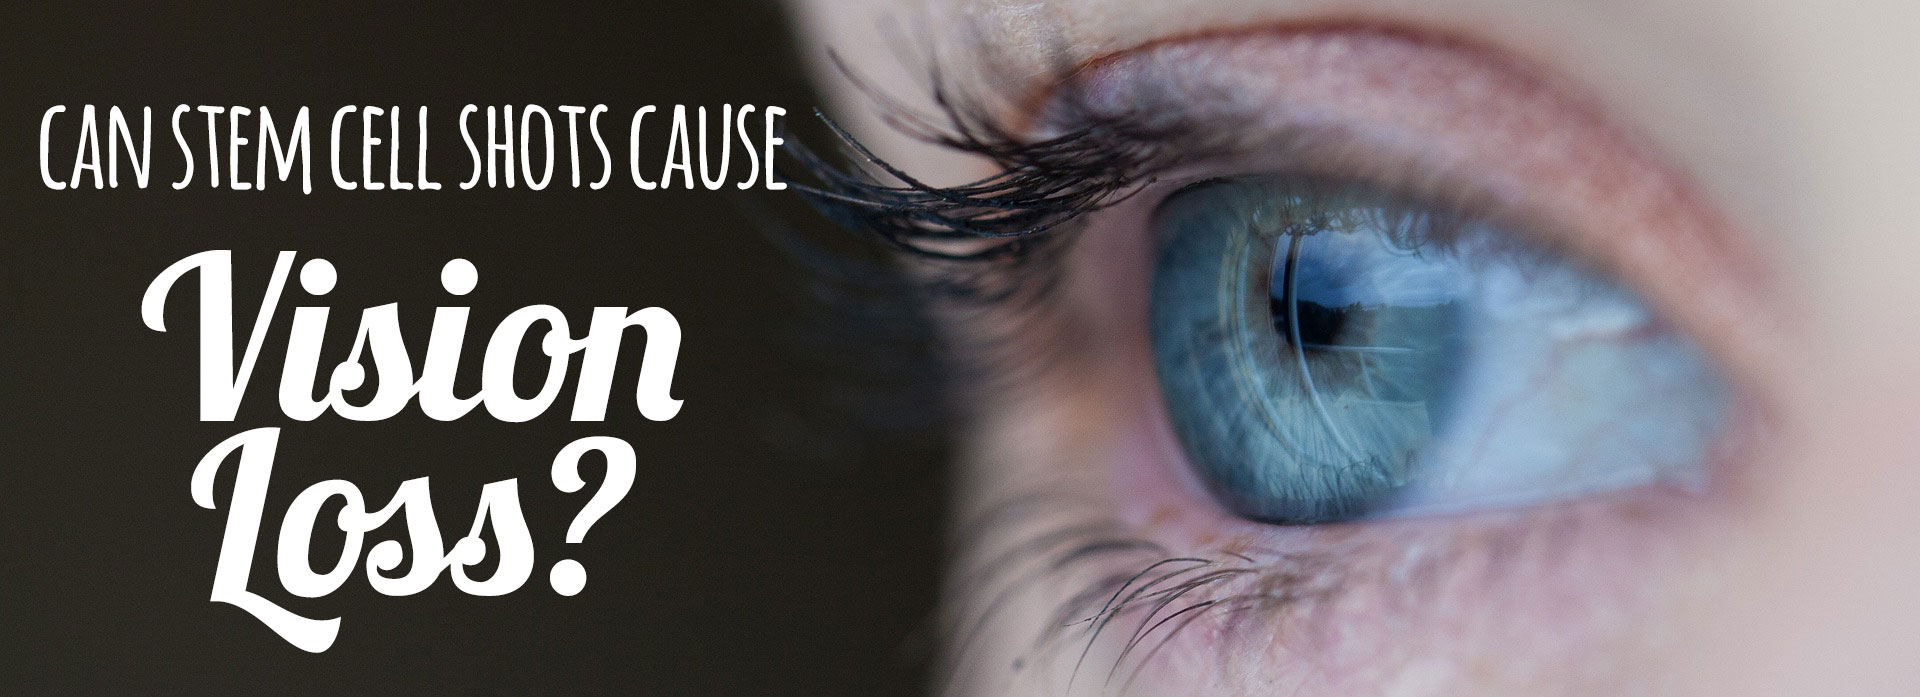 can stem cells cause vision loss?